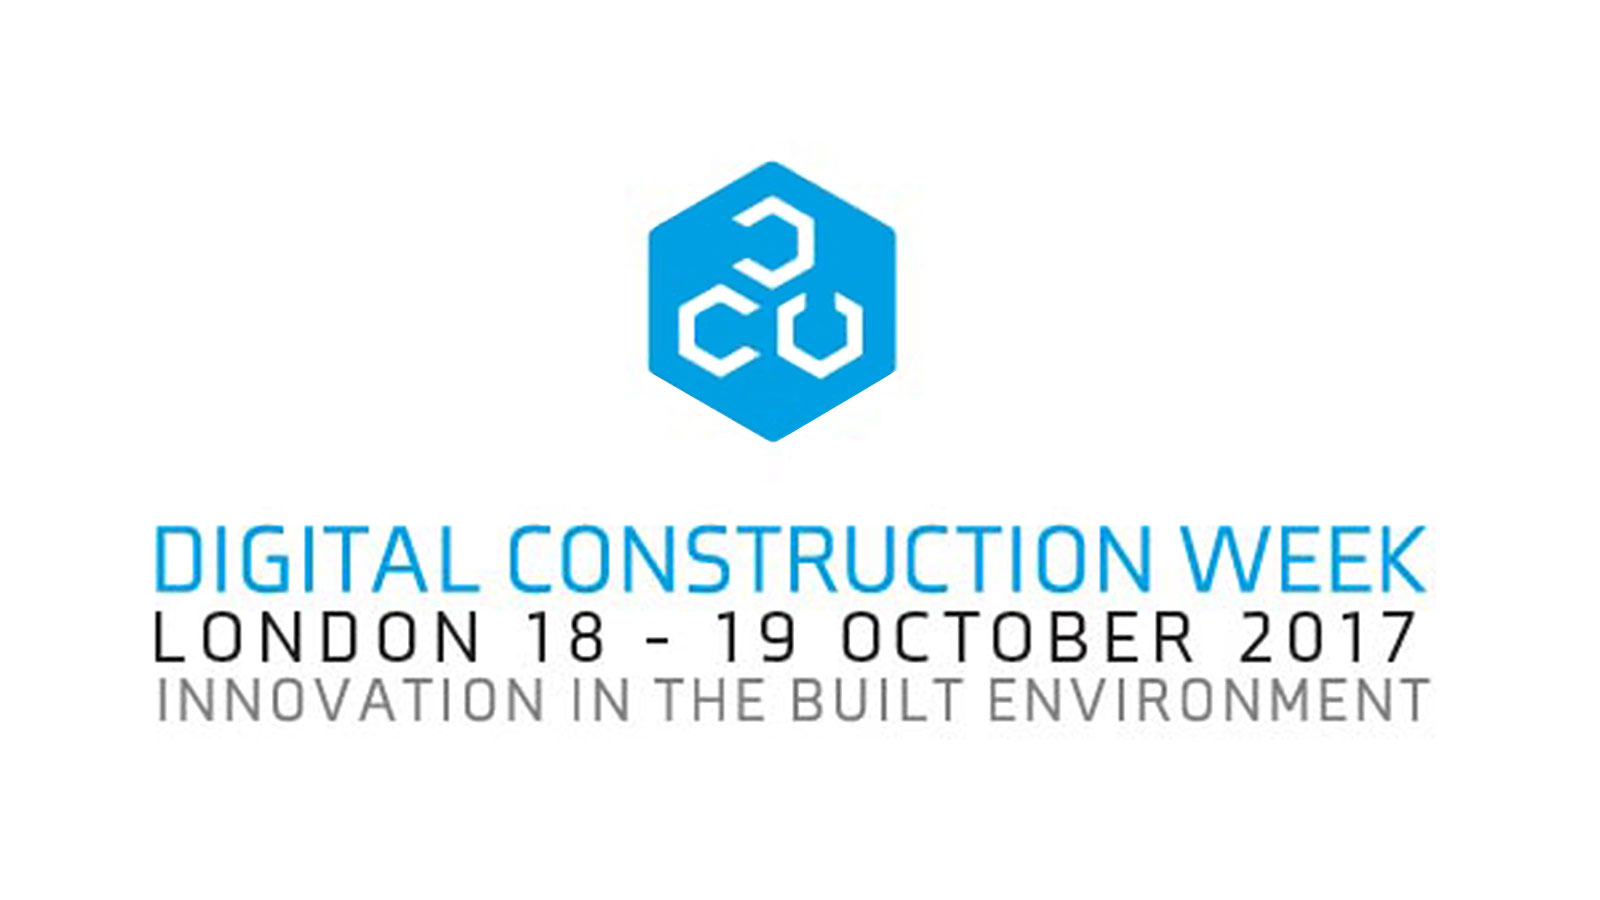 Come and meet Adoddle at Digital Construction week in London